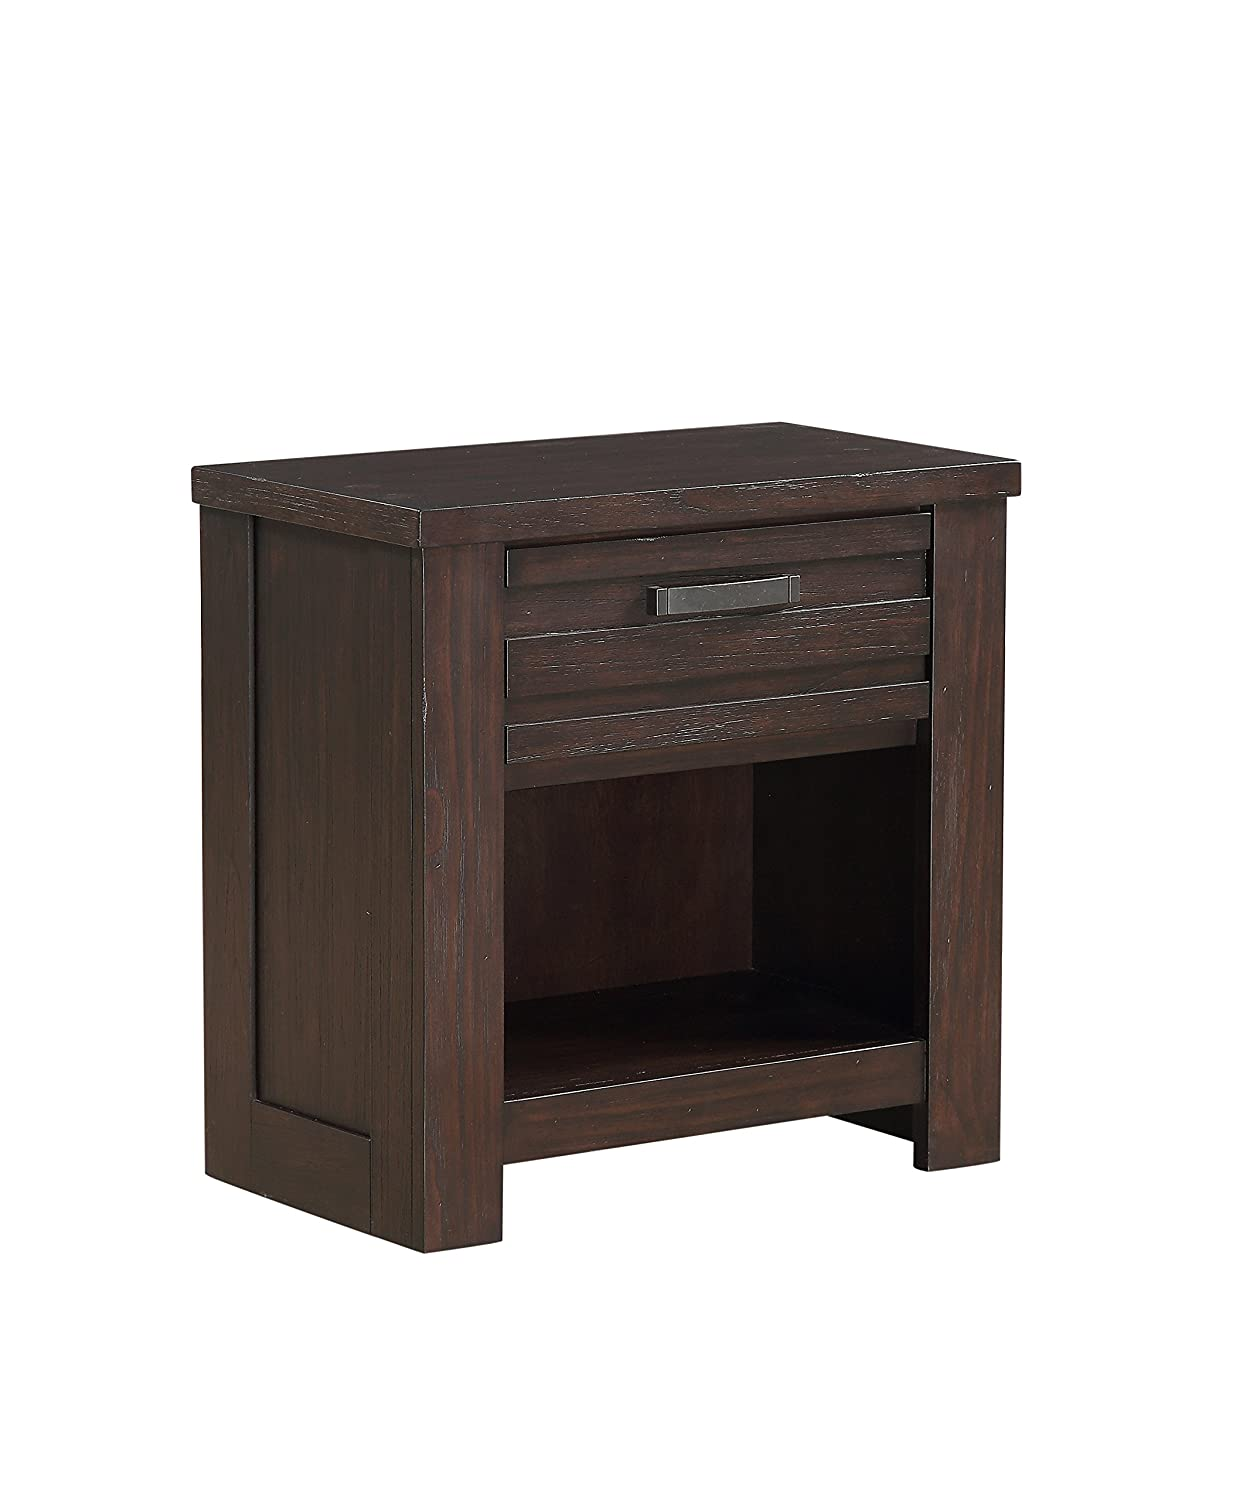 "Stylistics Hartford Nightstand, 27"" x 16"" x 27"", Dark Brown"